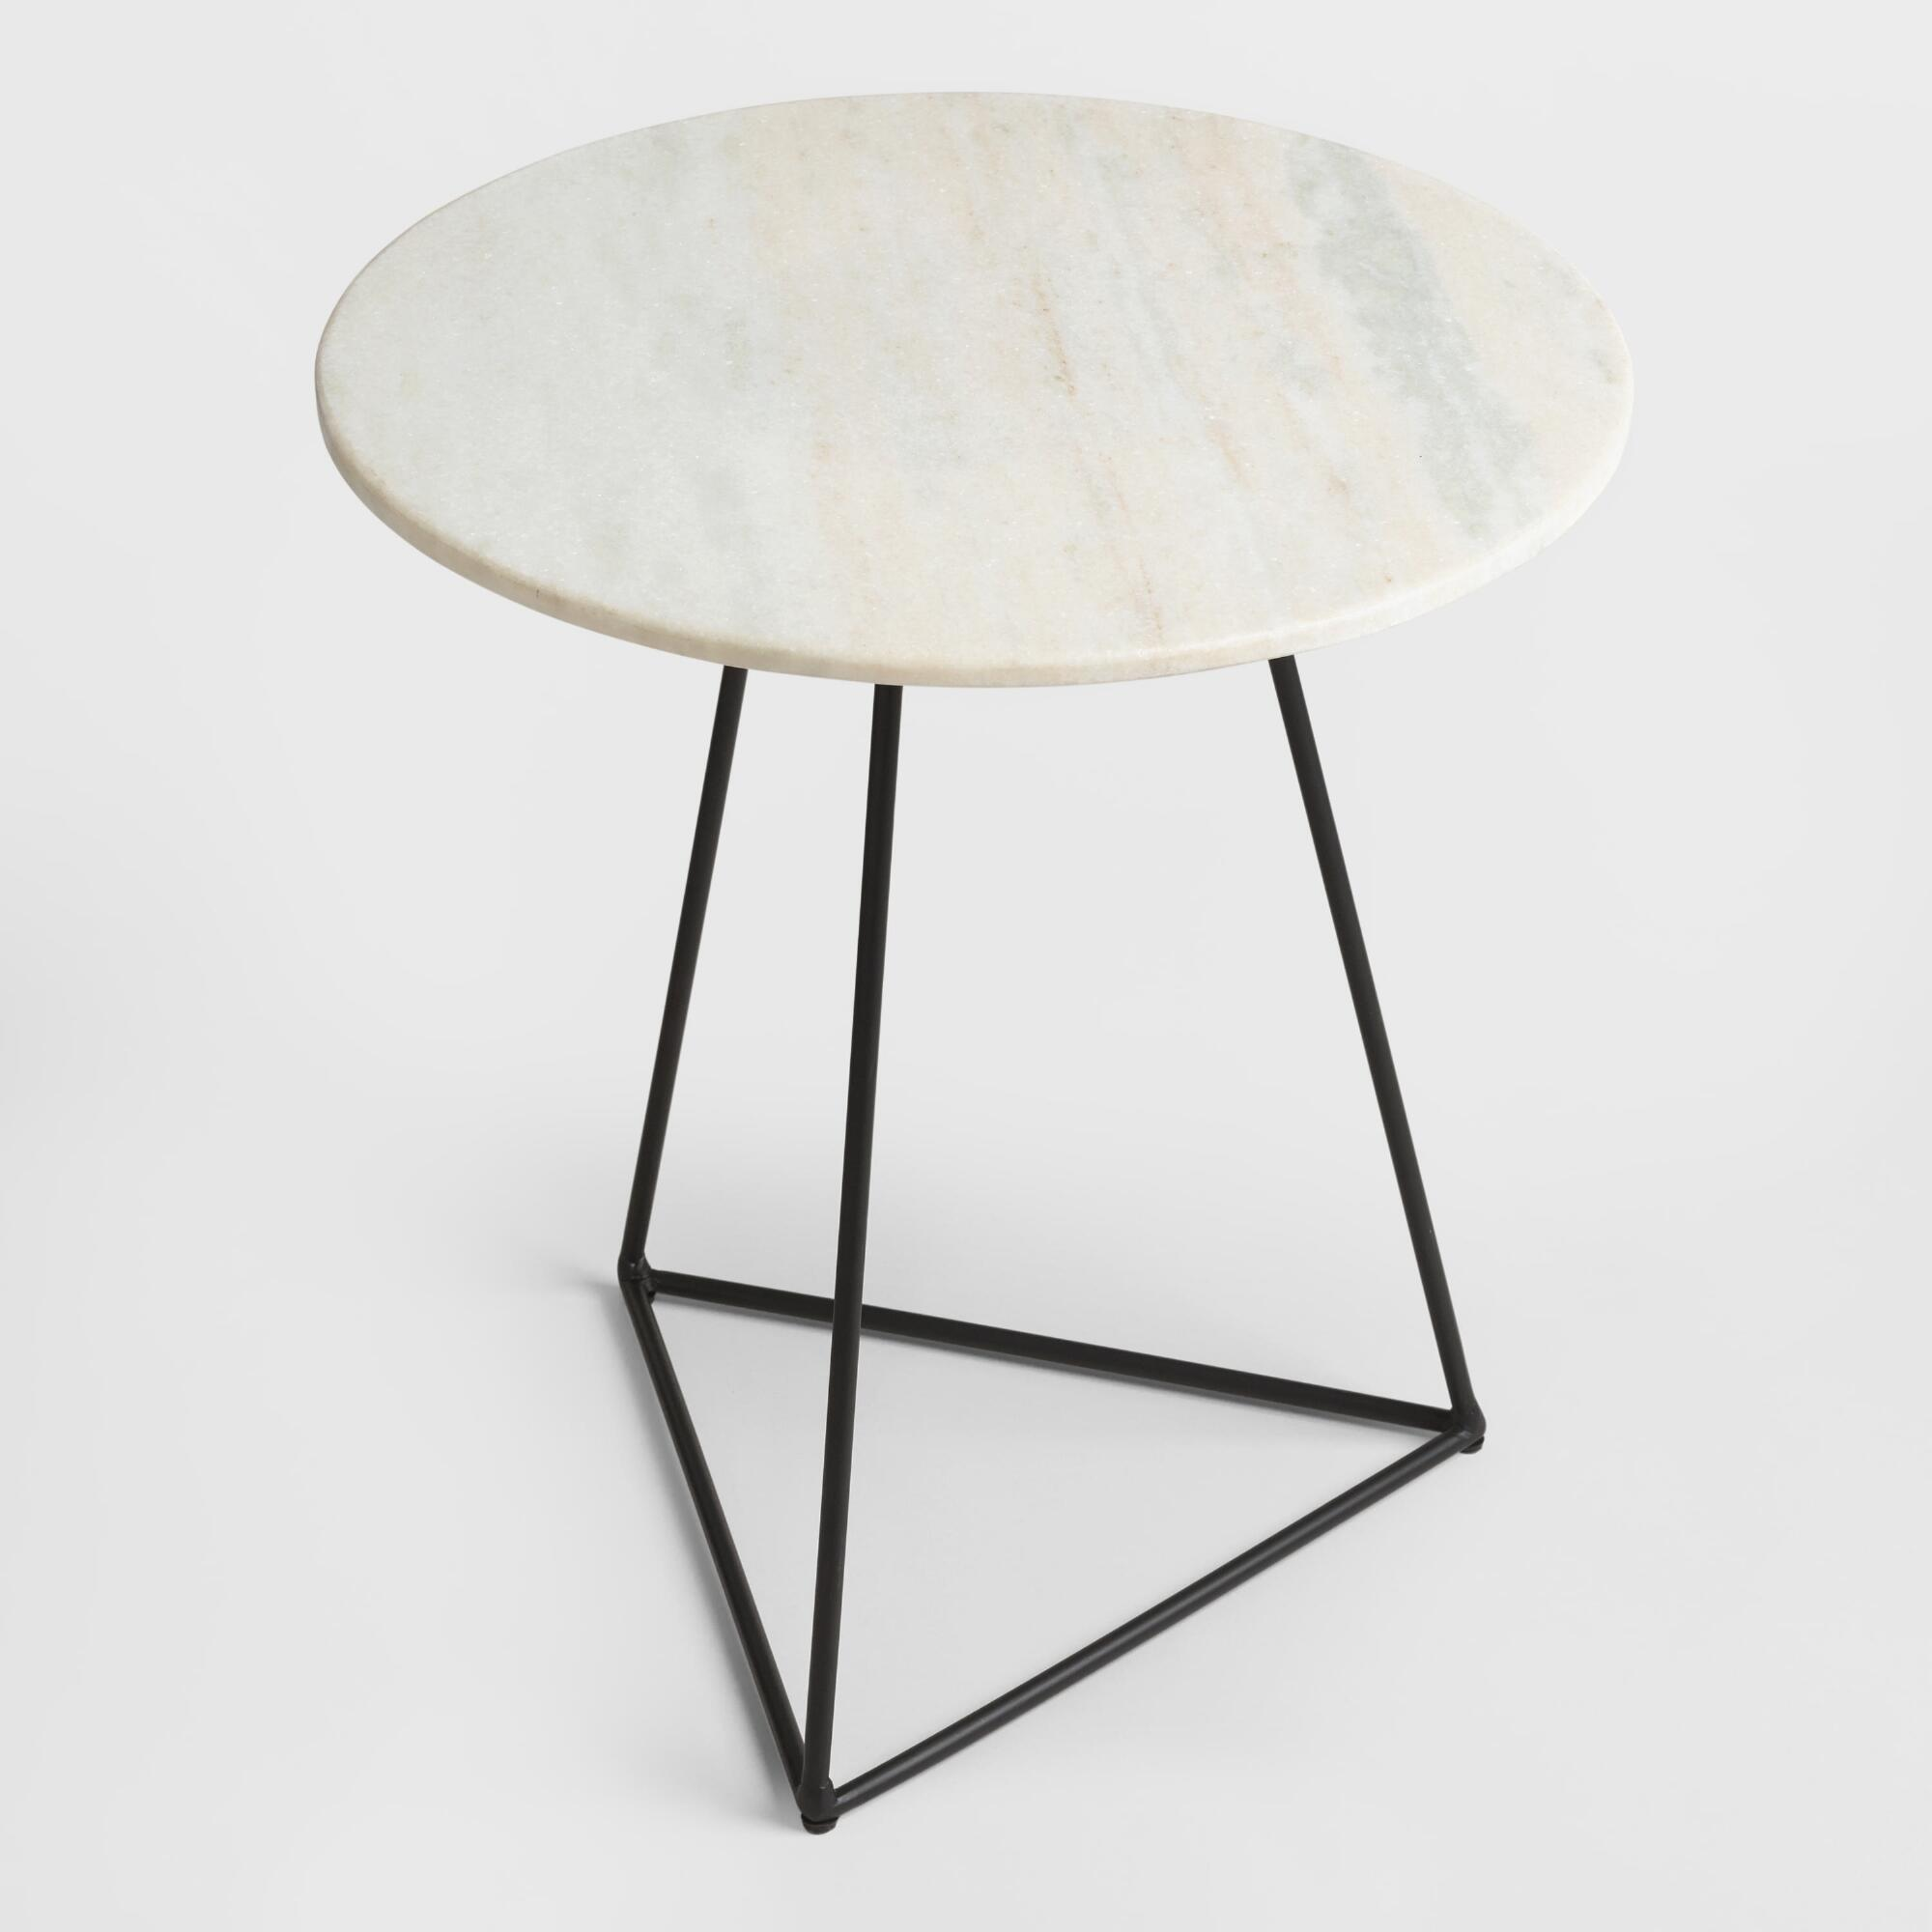 white marble and metal round accent table world market products side tables entrance furniture red lamps for living room target small cast iron parasol base top console grey black